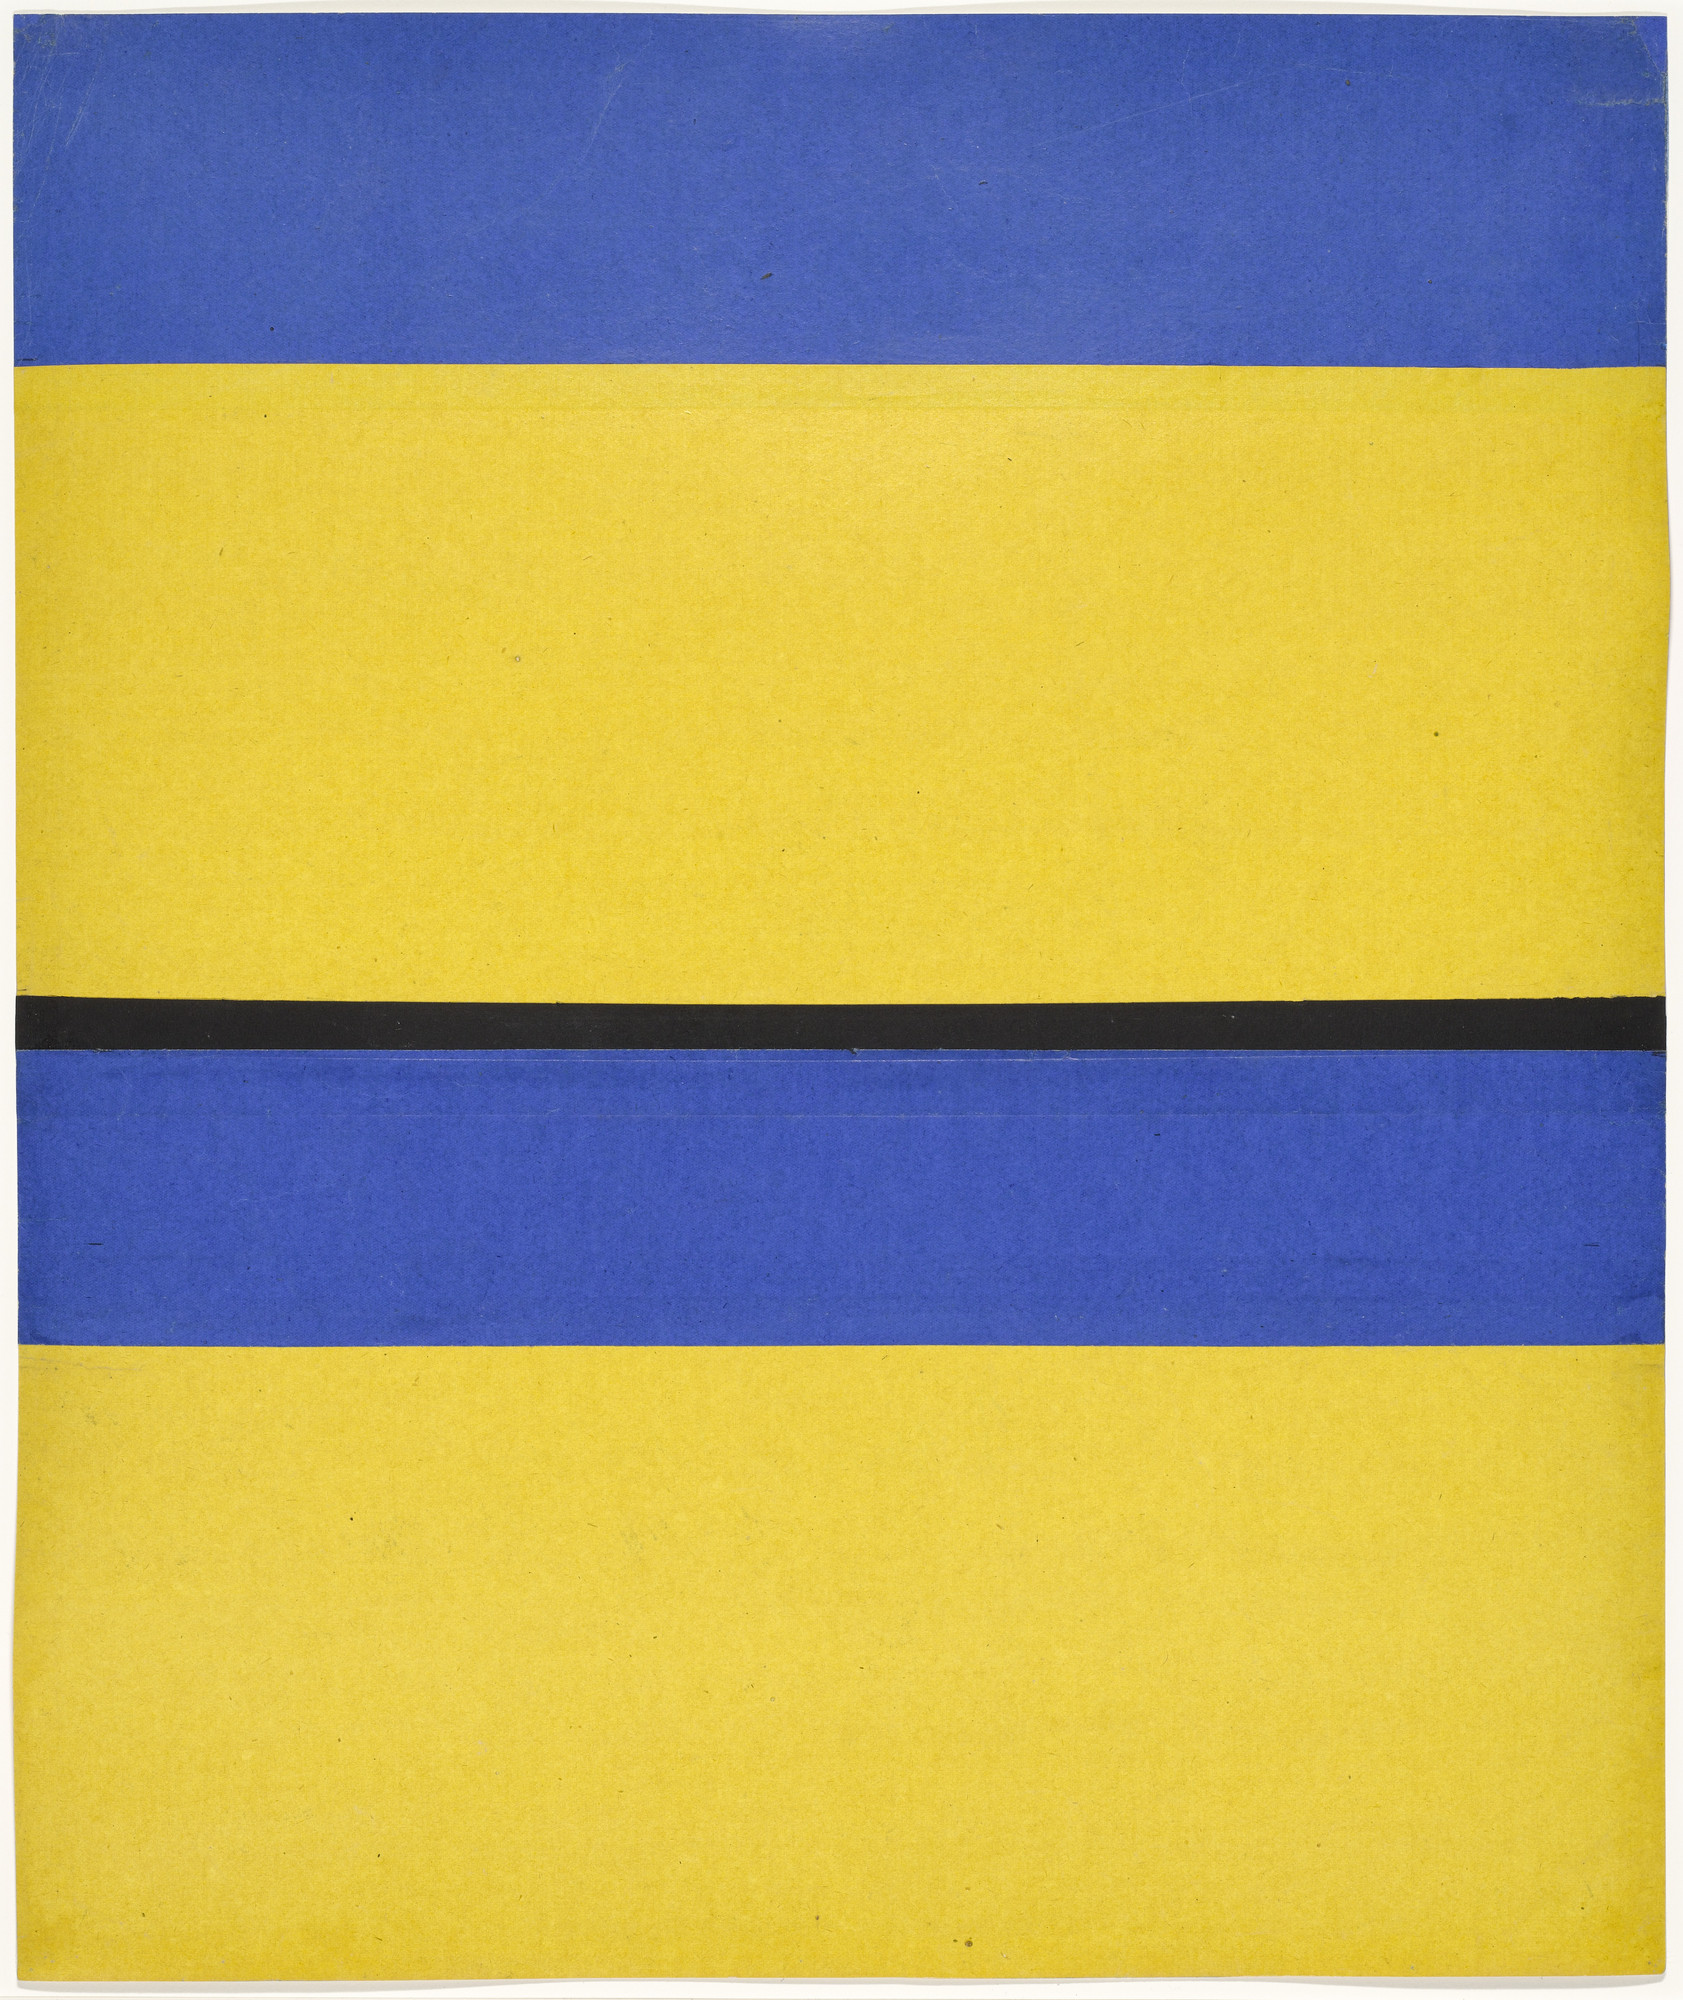 Ellsworth Kelly. Study for Fête à Torcy. 1952